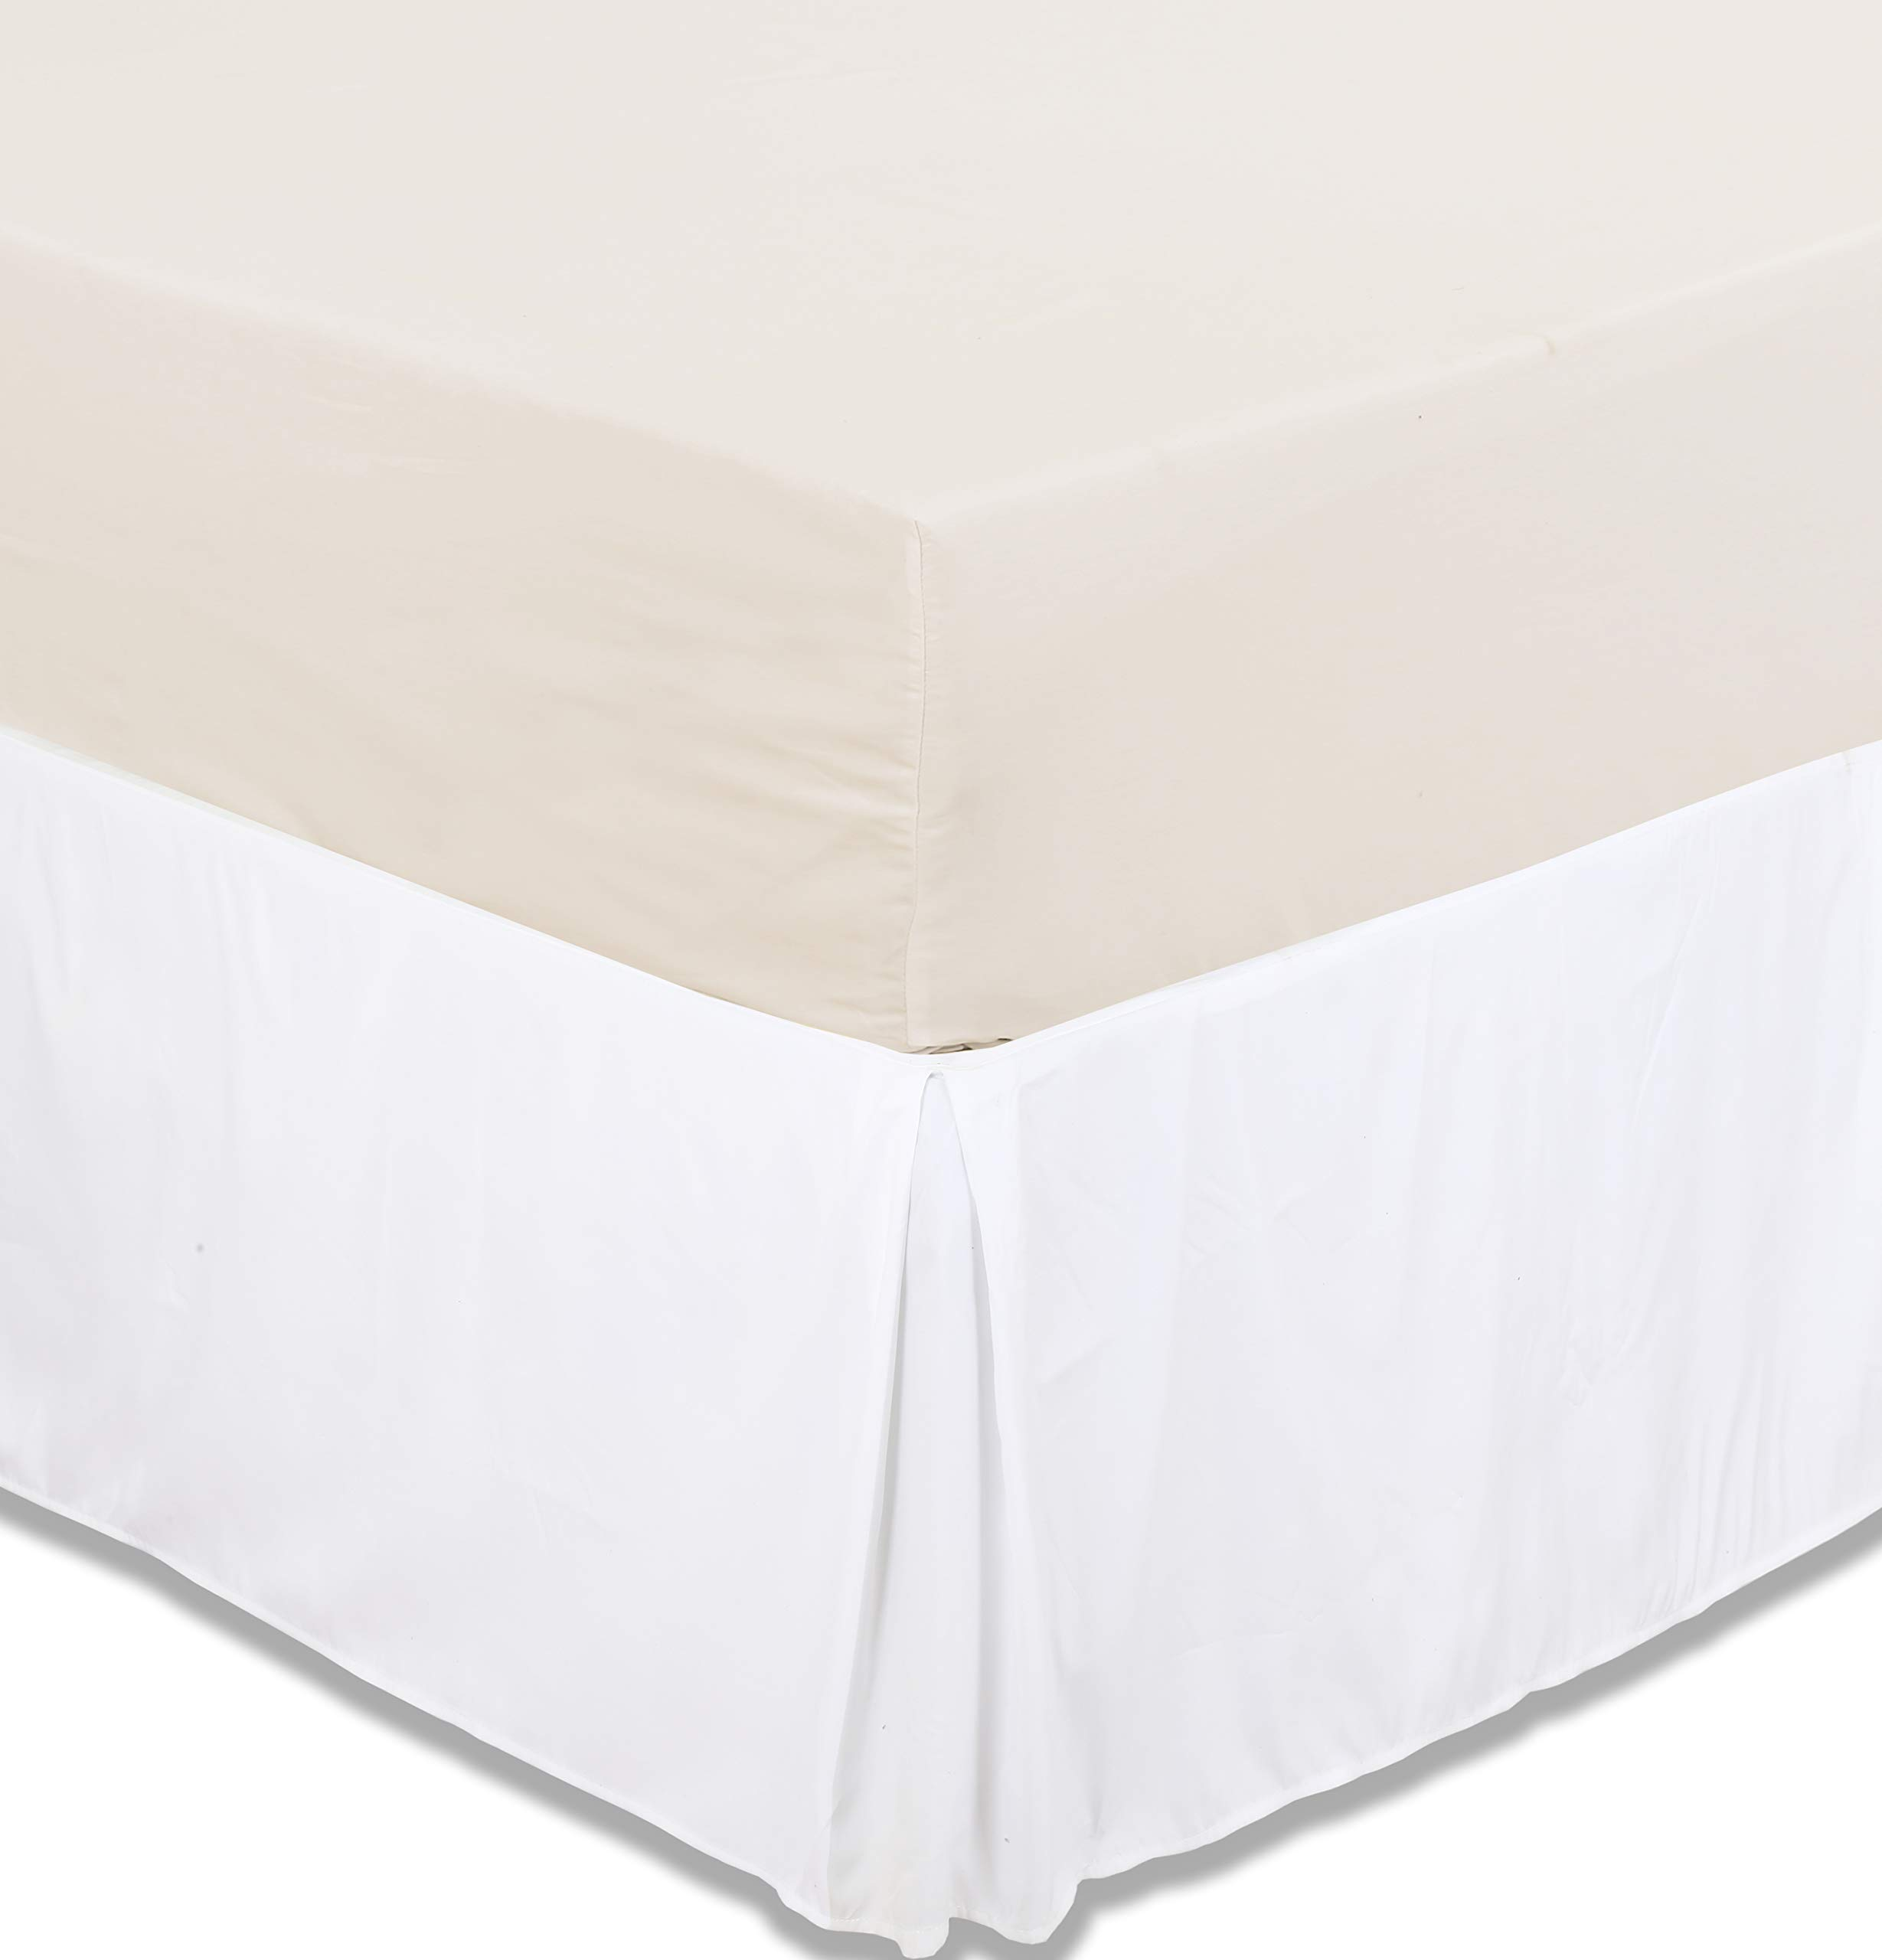 """Excellent Deals Bed Skirt (Queen, White) - Brushed Microfiber Quadruple Pleated Dust Ruffle - 14.5"""" inch elegant Drop - Easy Clean, Iron Easy-Fade and Wrinkle Resistant-Comfortable & Durable."""